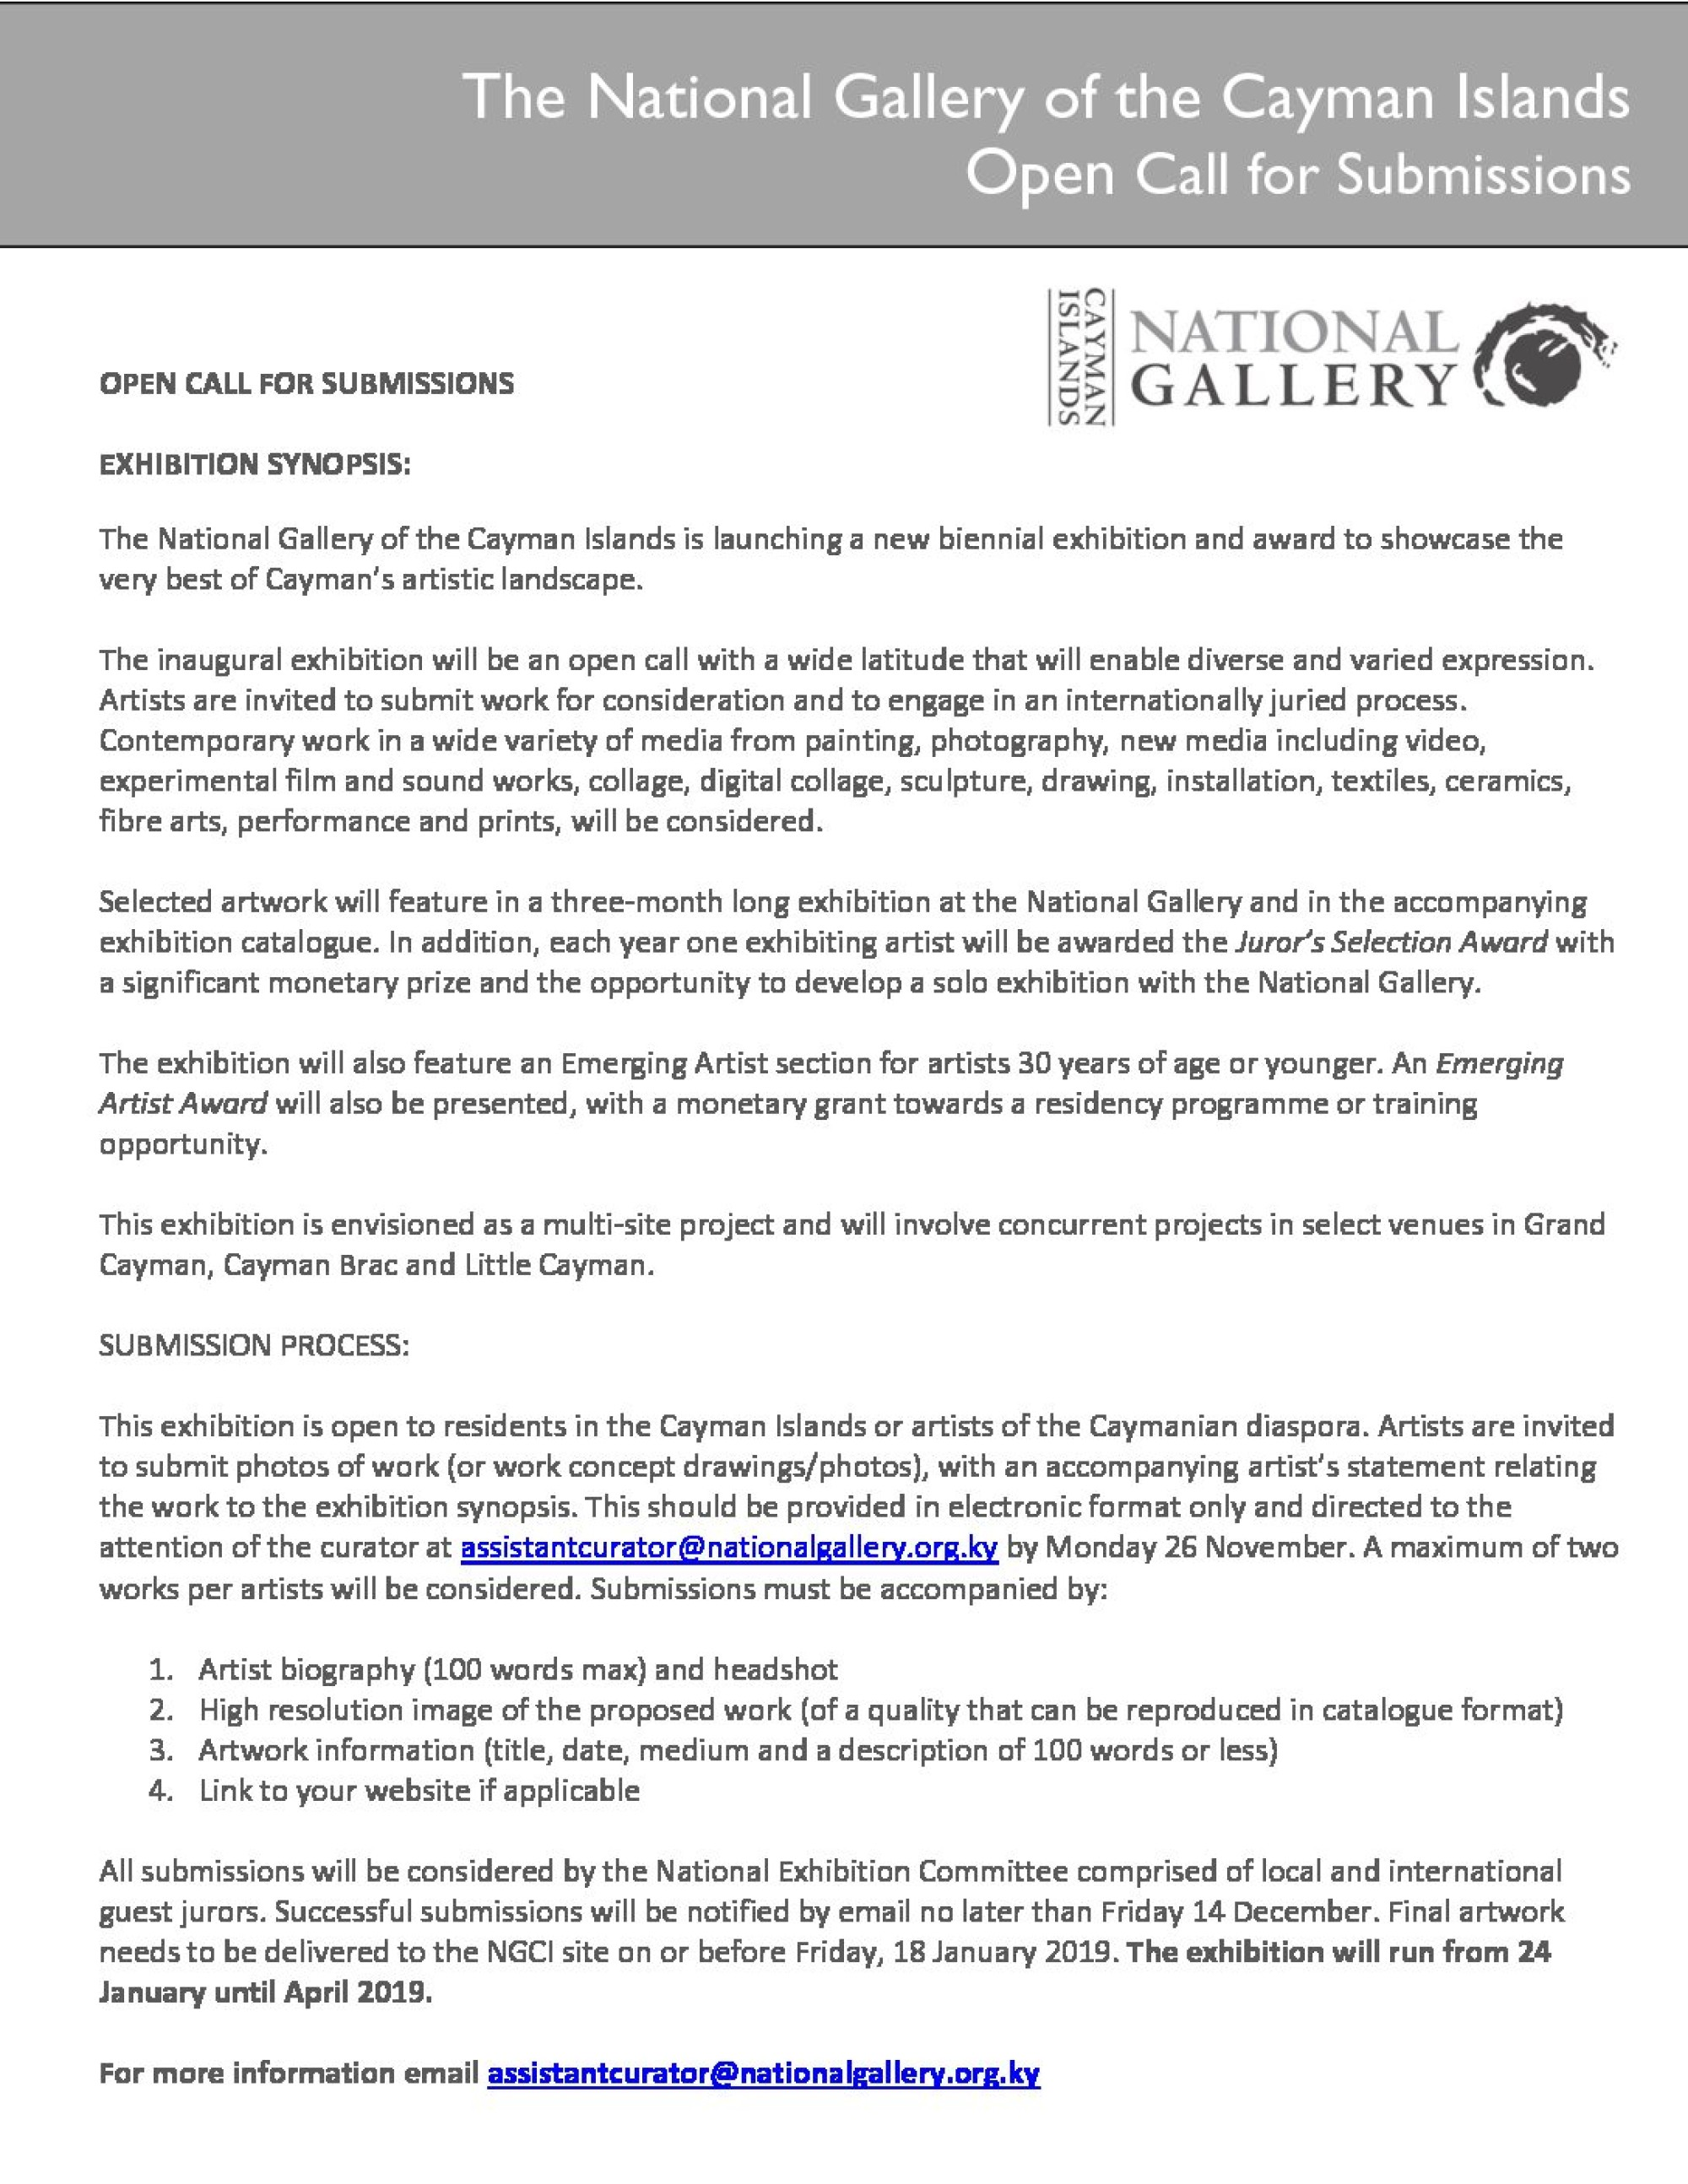 Open Call for Artist - New National Gallery Biennial Exhibition